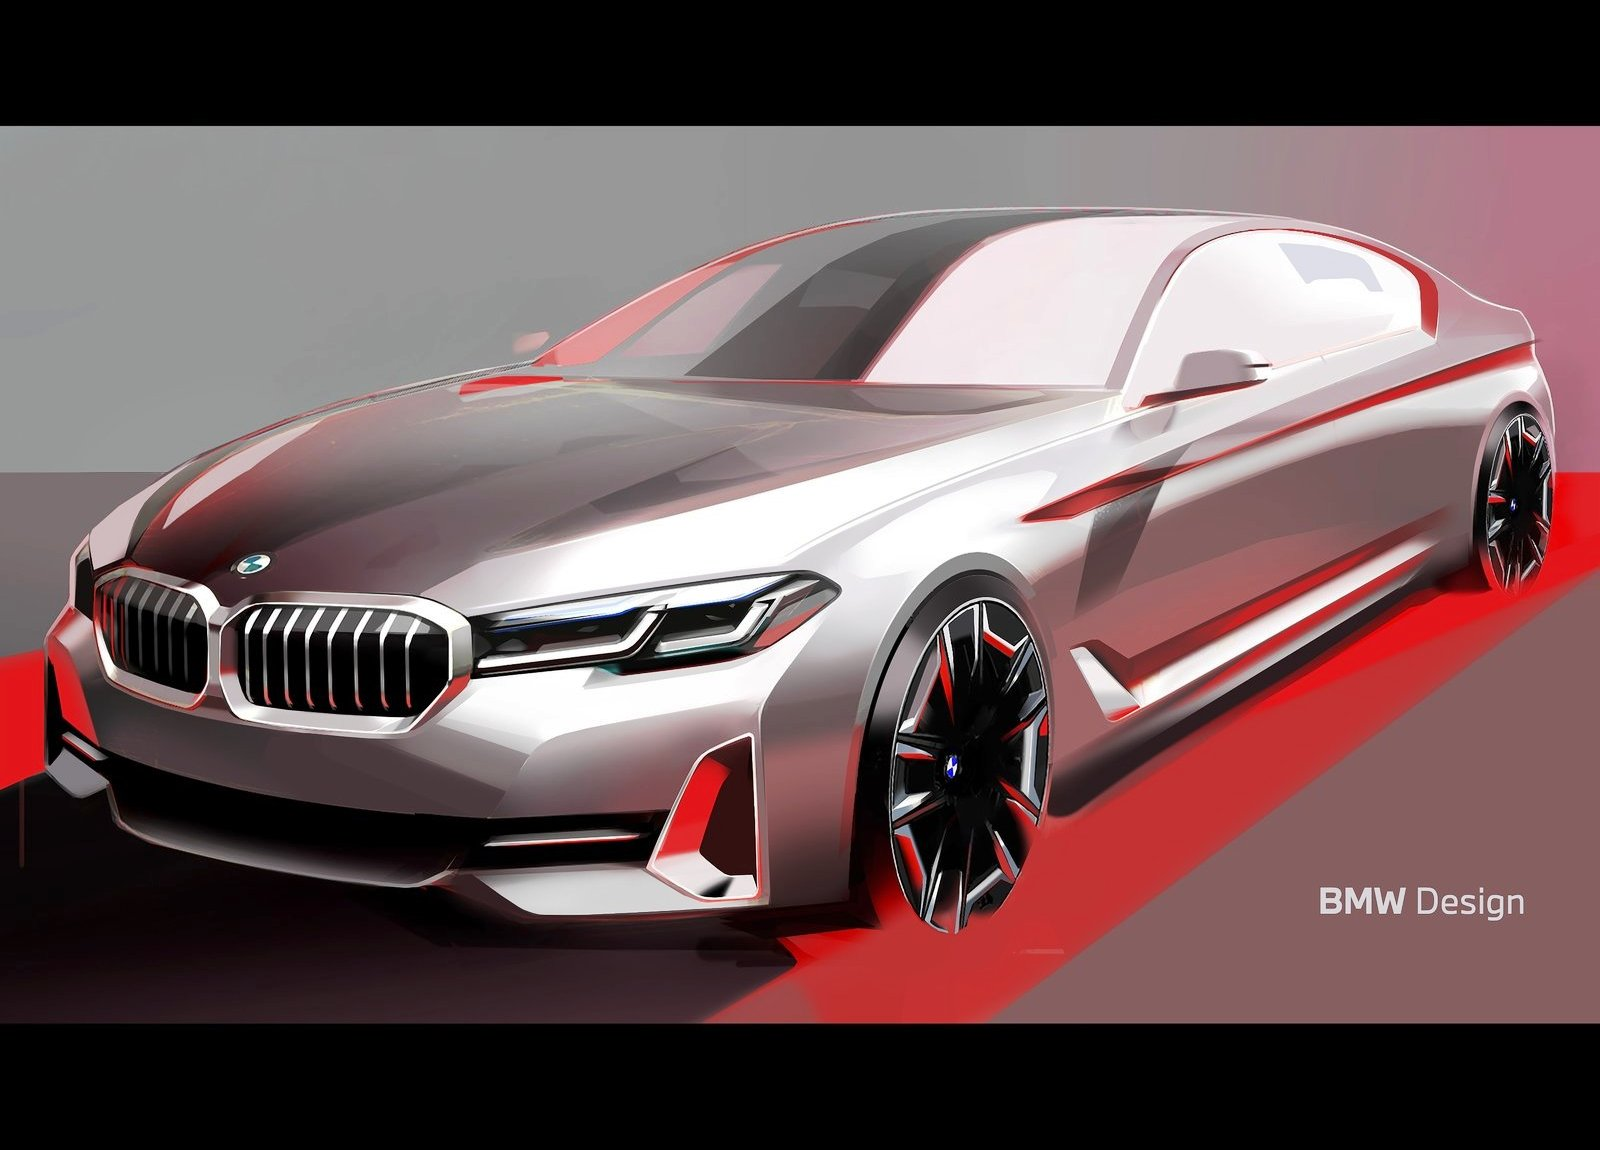 2021 BMW 5 Series sketch